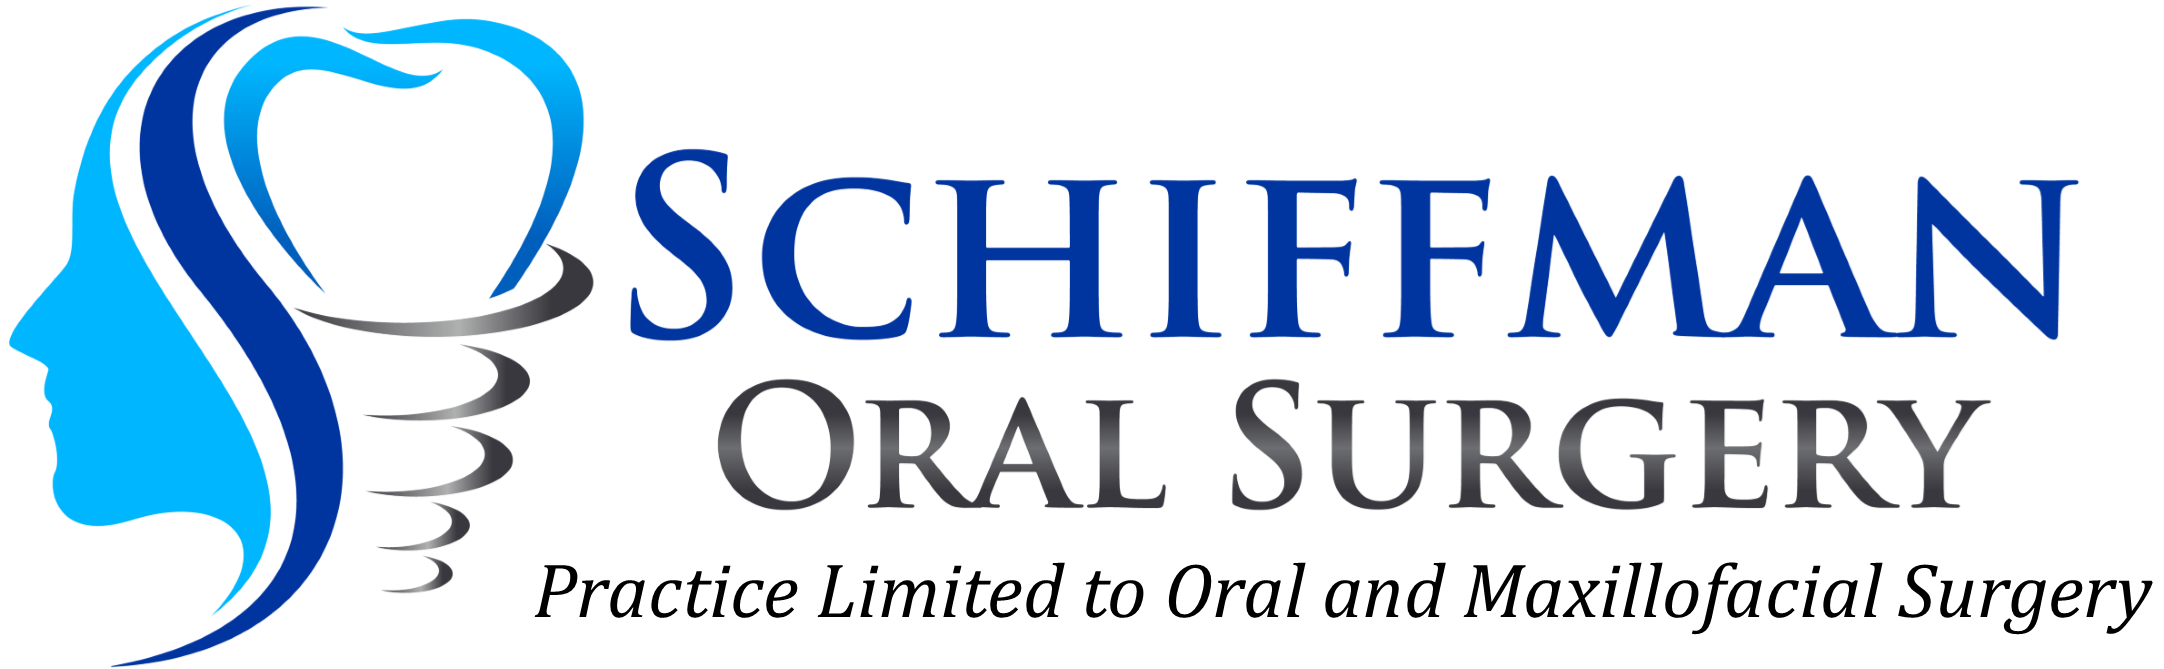 Best Oral Surgeon Near You Long Island Schiffman Oral Surgery